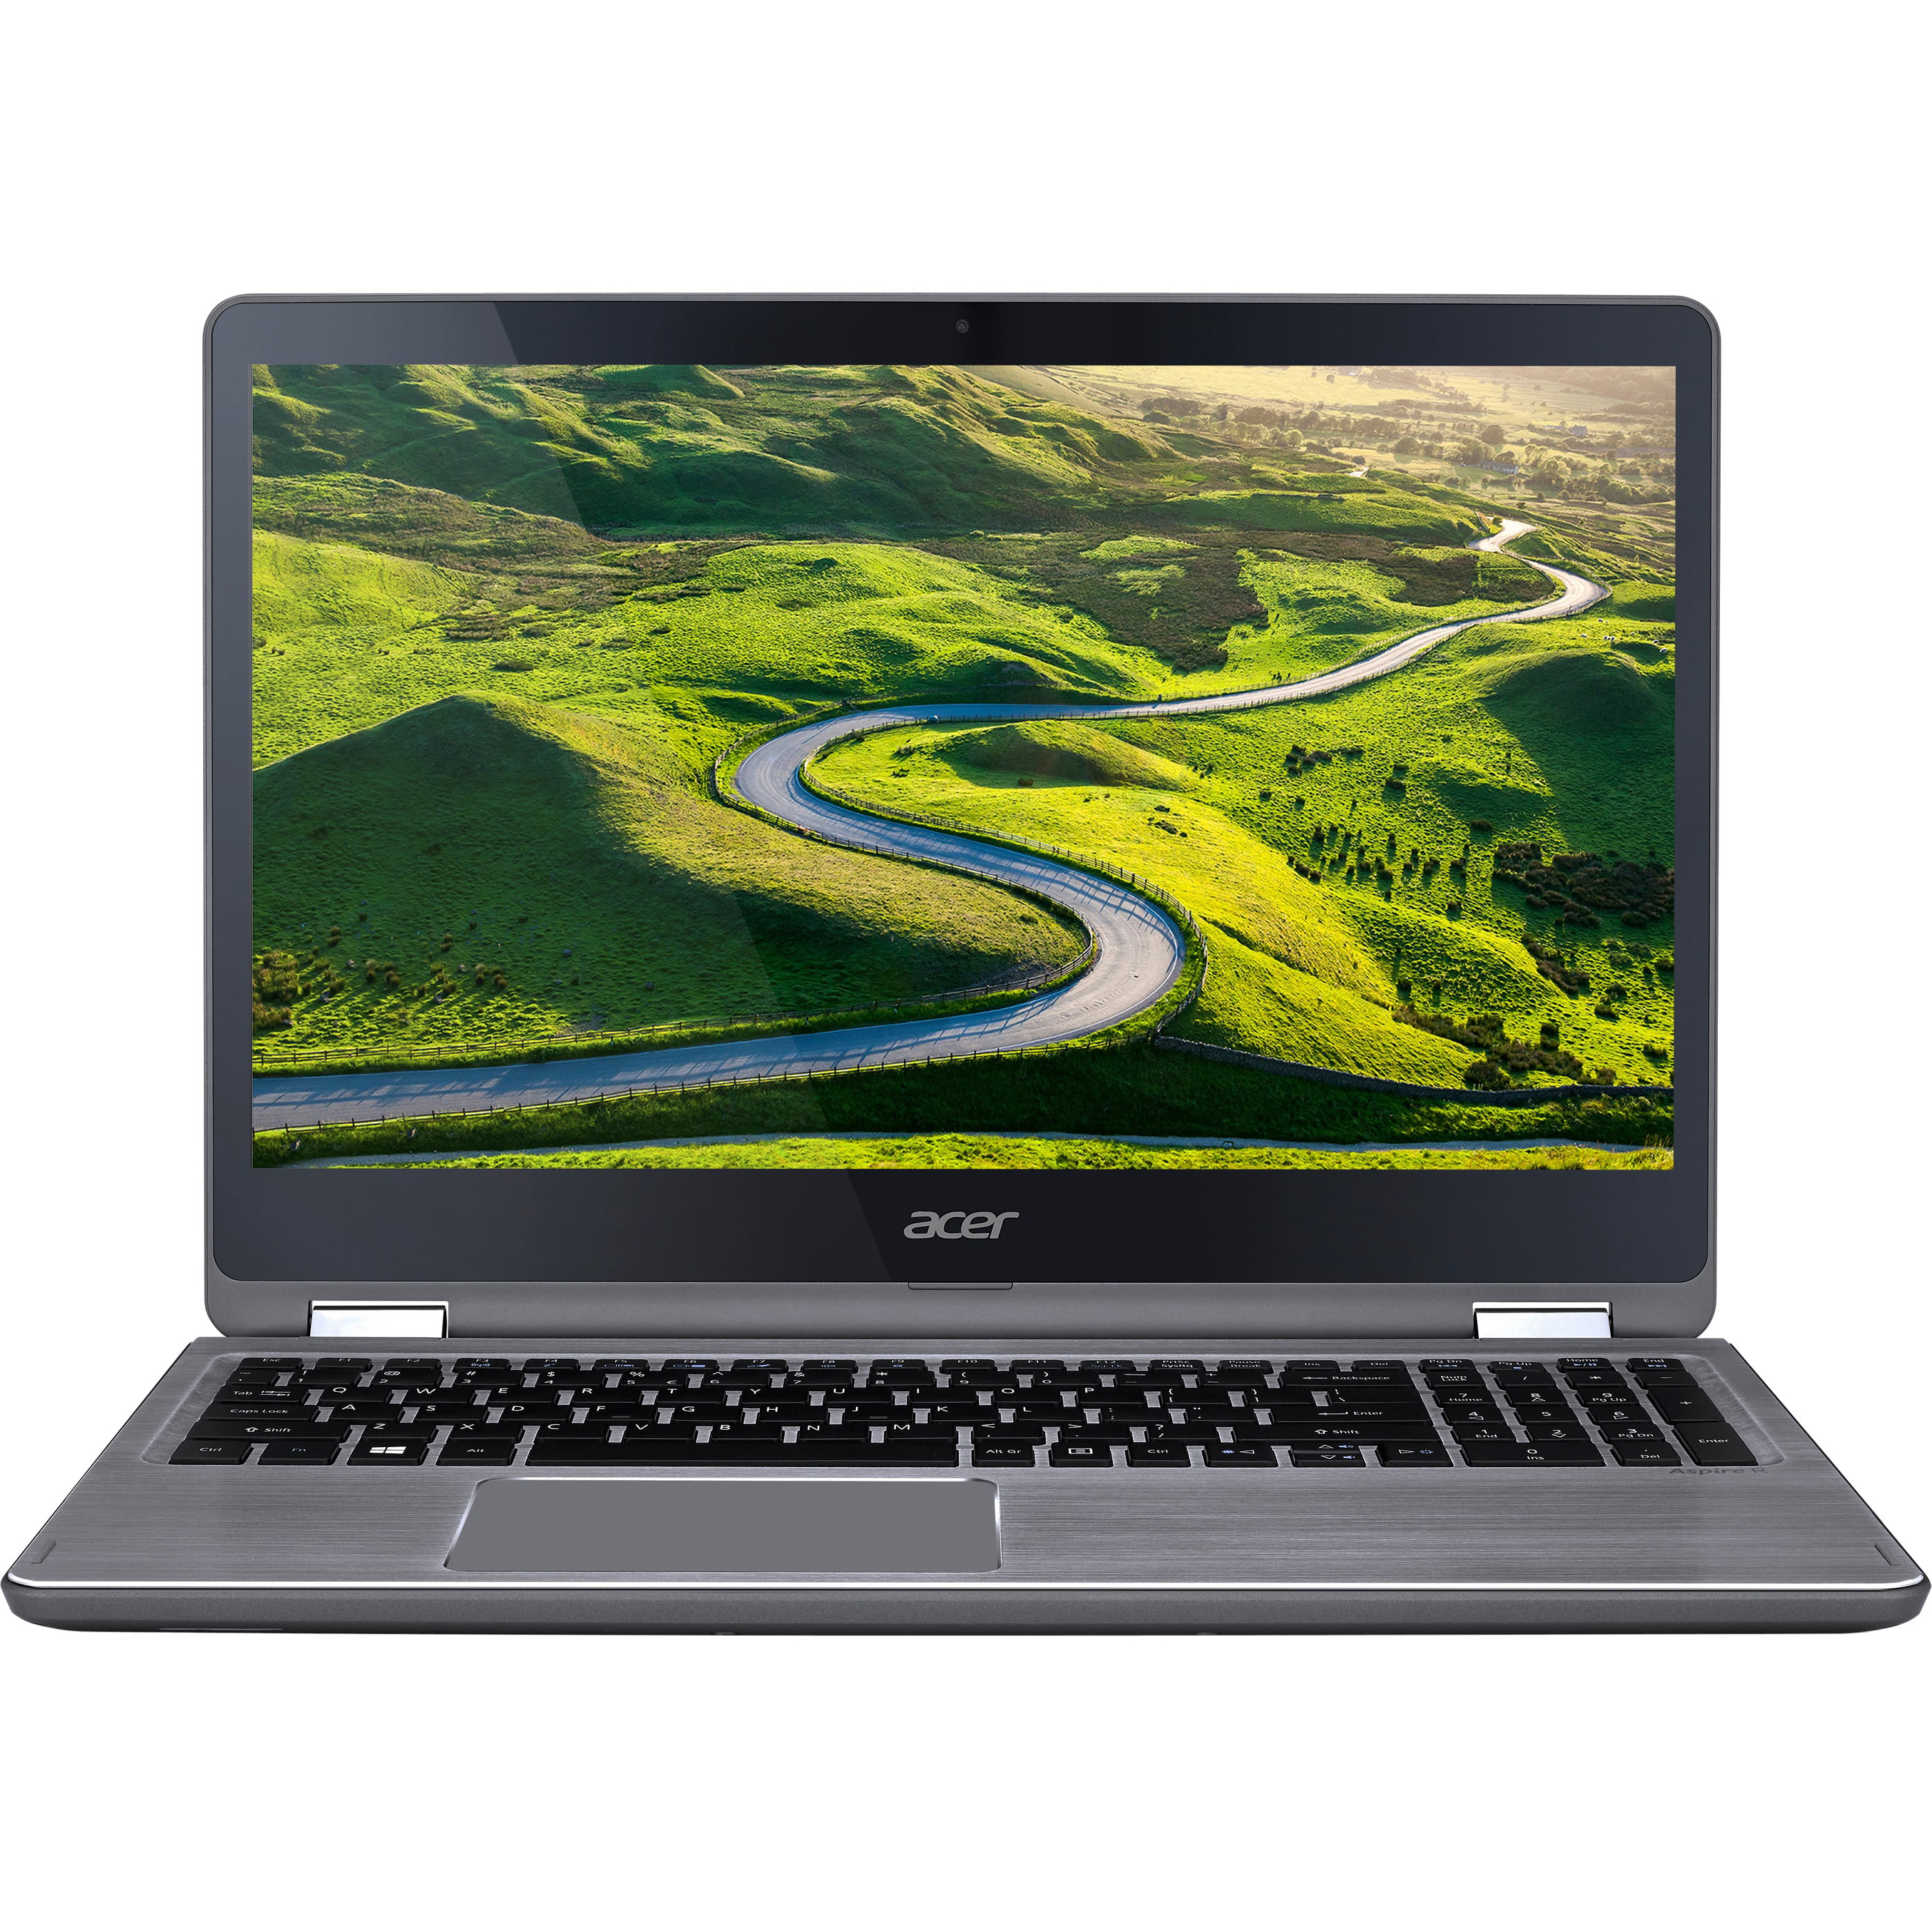 "Acer 15.6"" Intel Core i7 2.7GHz 12GB Ram 256GB SSD Windows 10 Home